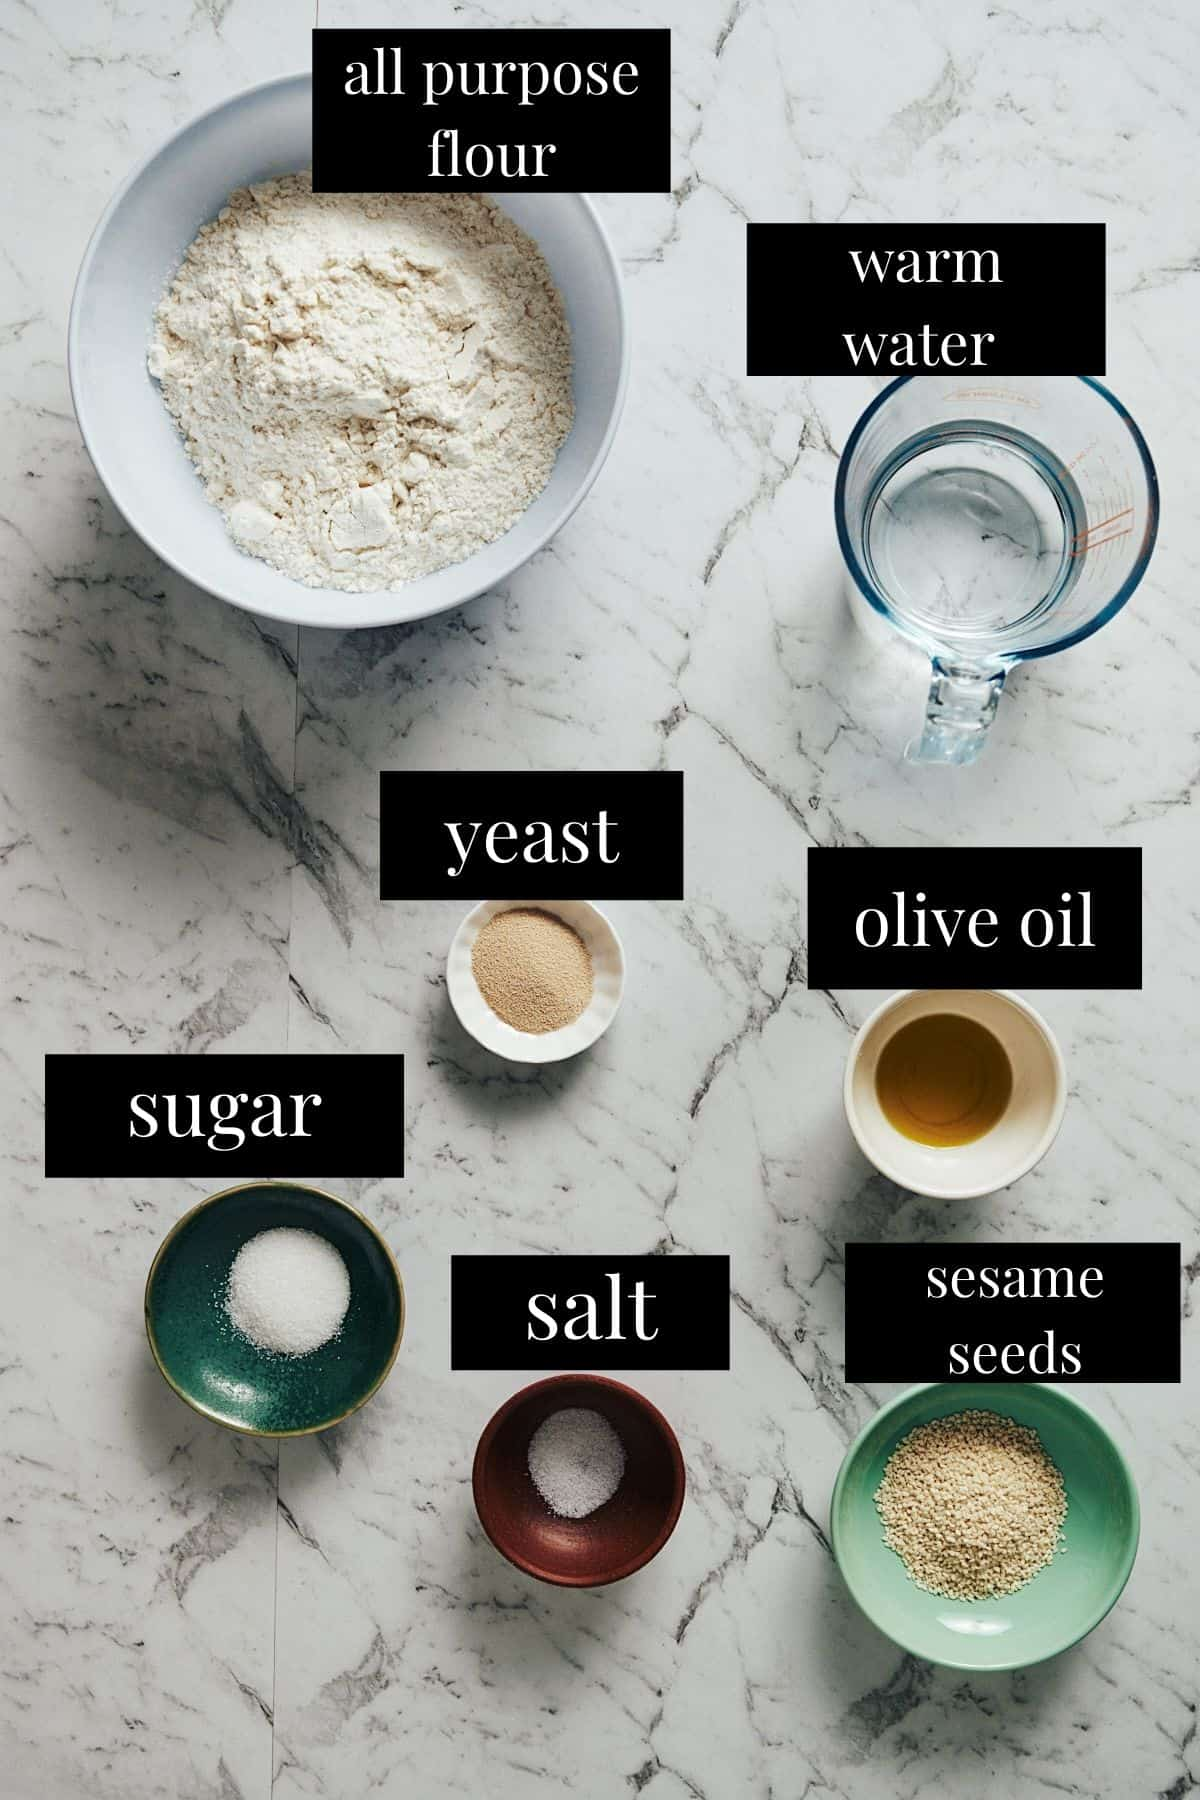 labeled ingredients laid out on a table to make greek lagana bread